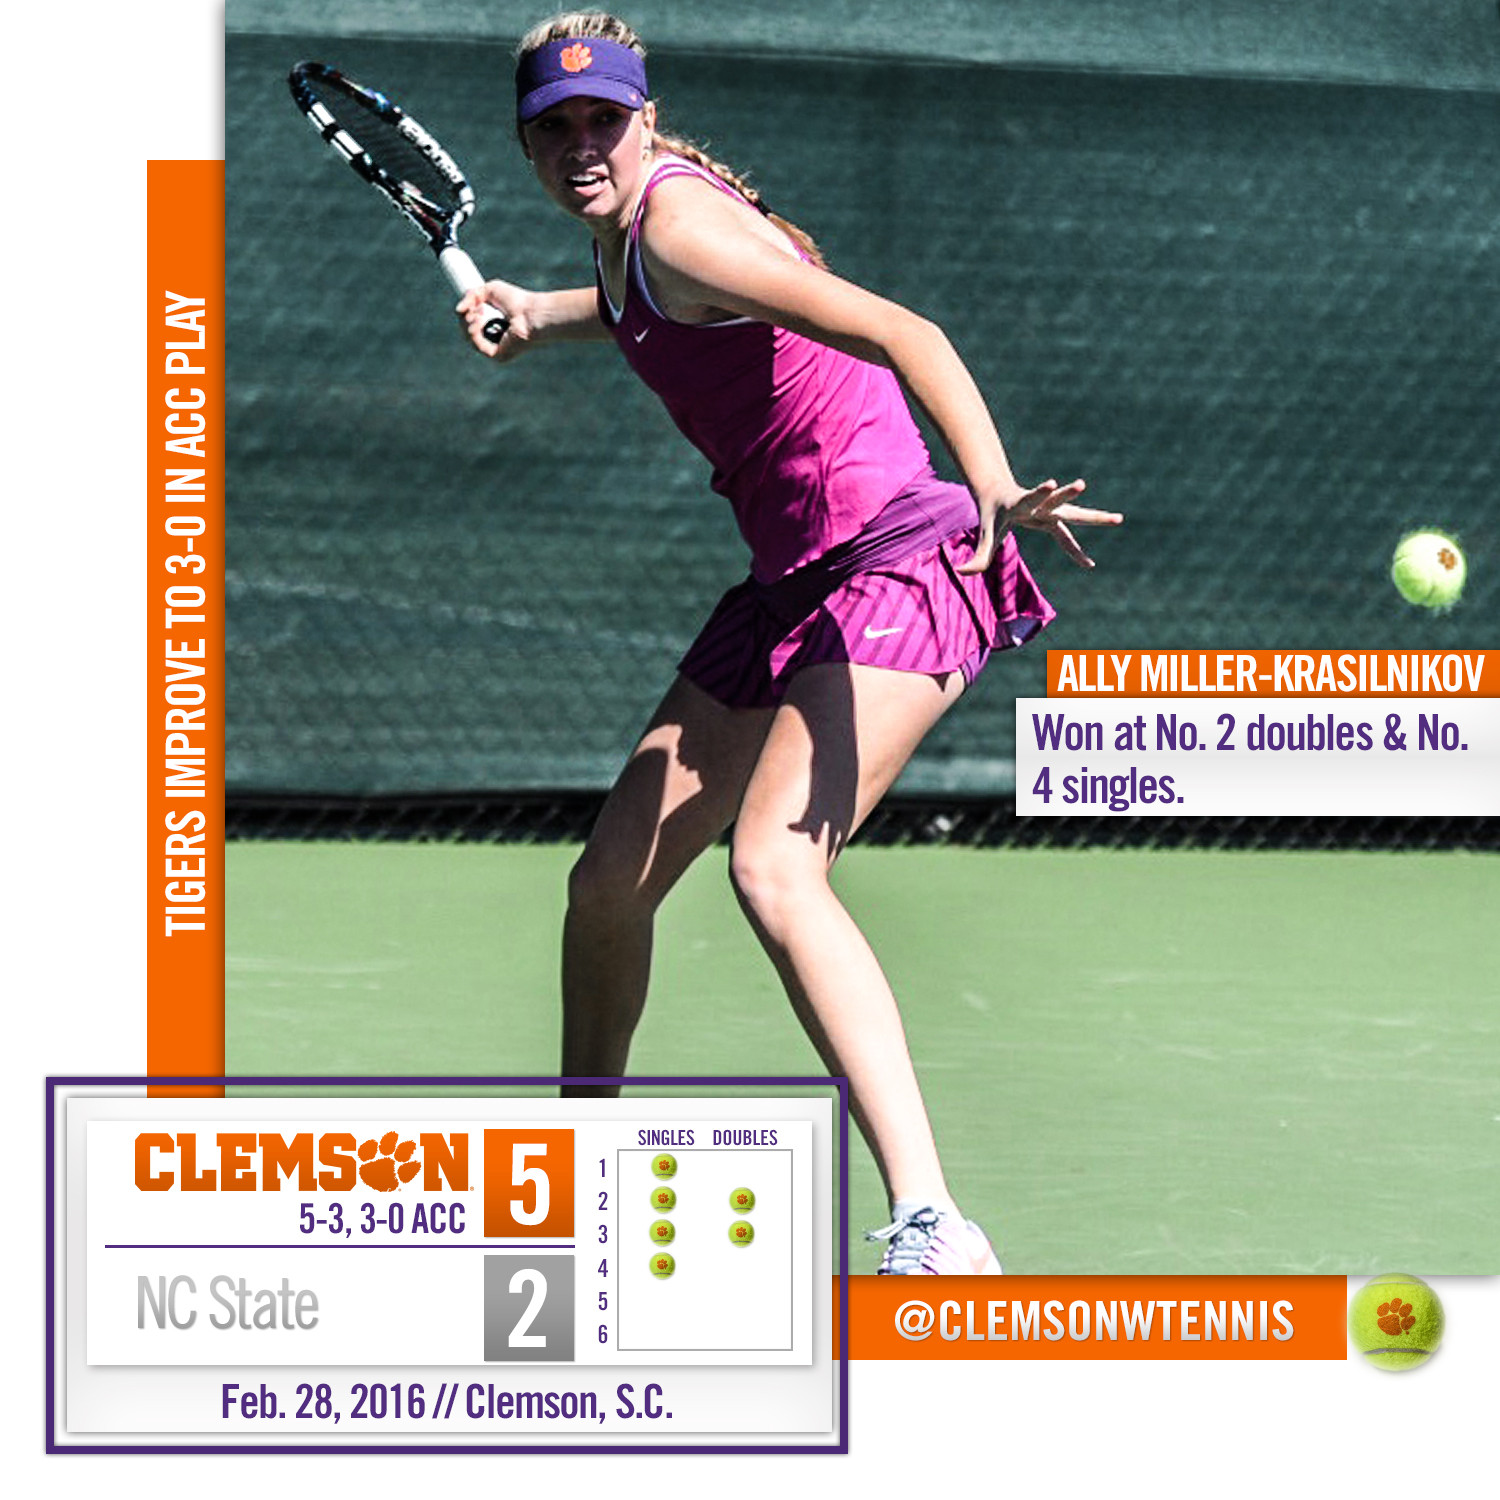 Tigers Win Third Straight ACC Match, Down NC State 5-2 Sunday